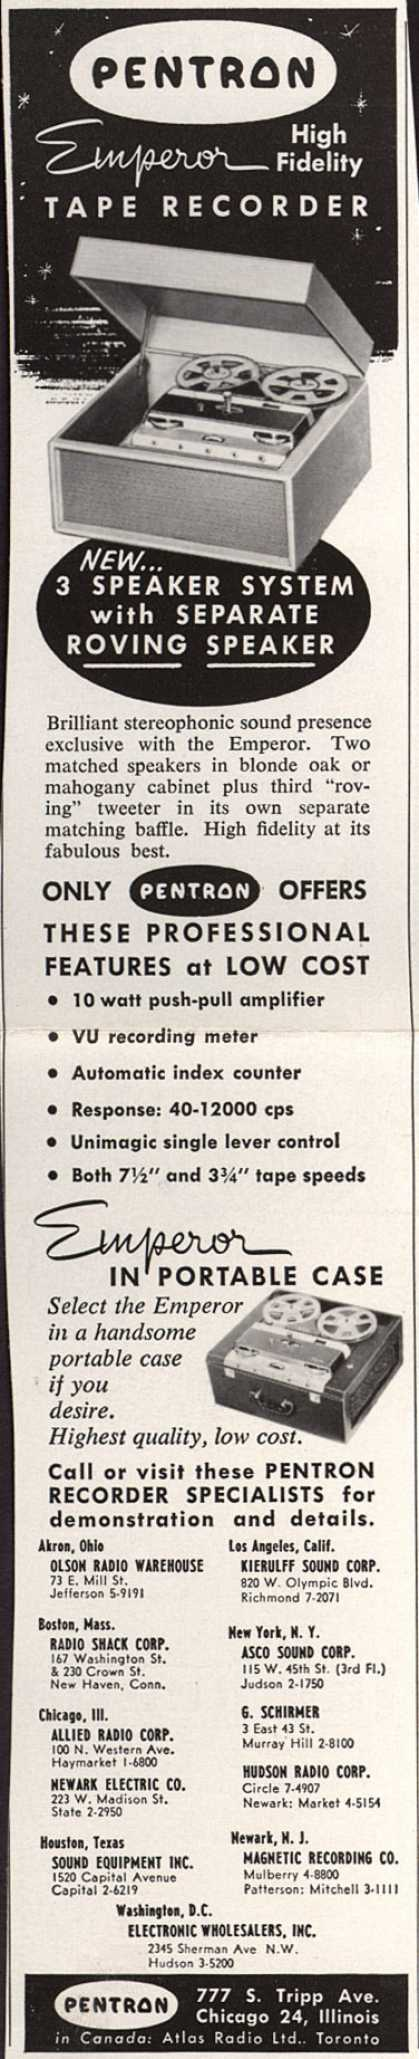 Pentron's Tape Recorder – Pentron Emperor High Fidelity Tape Recorder. New... 3 Speaker System with Separate Roving Speaker. (1956)